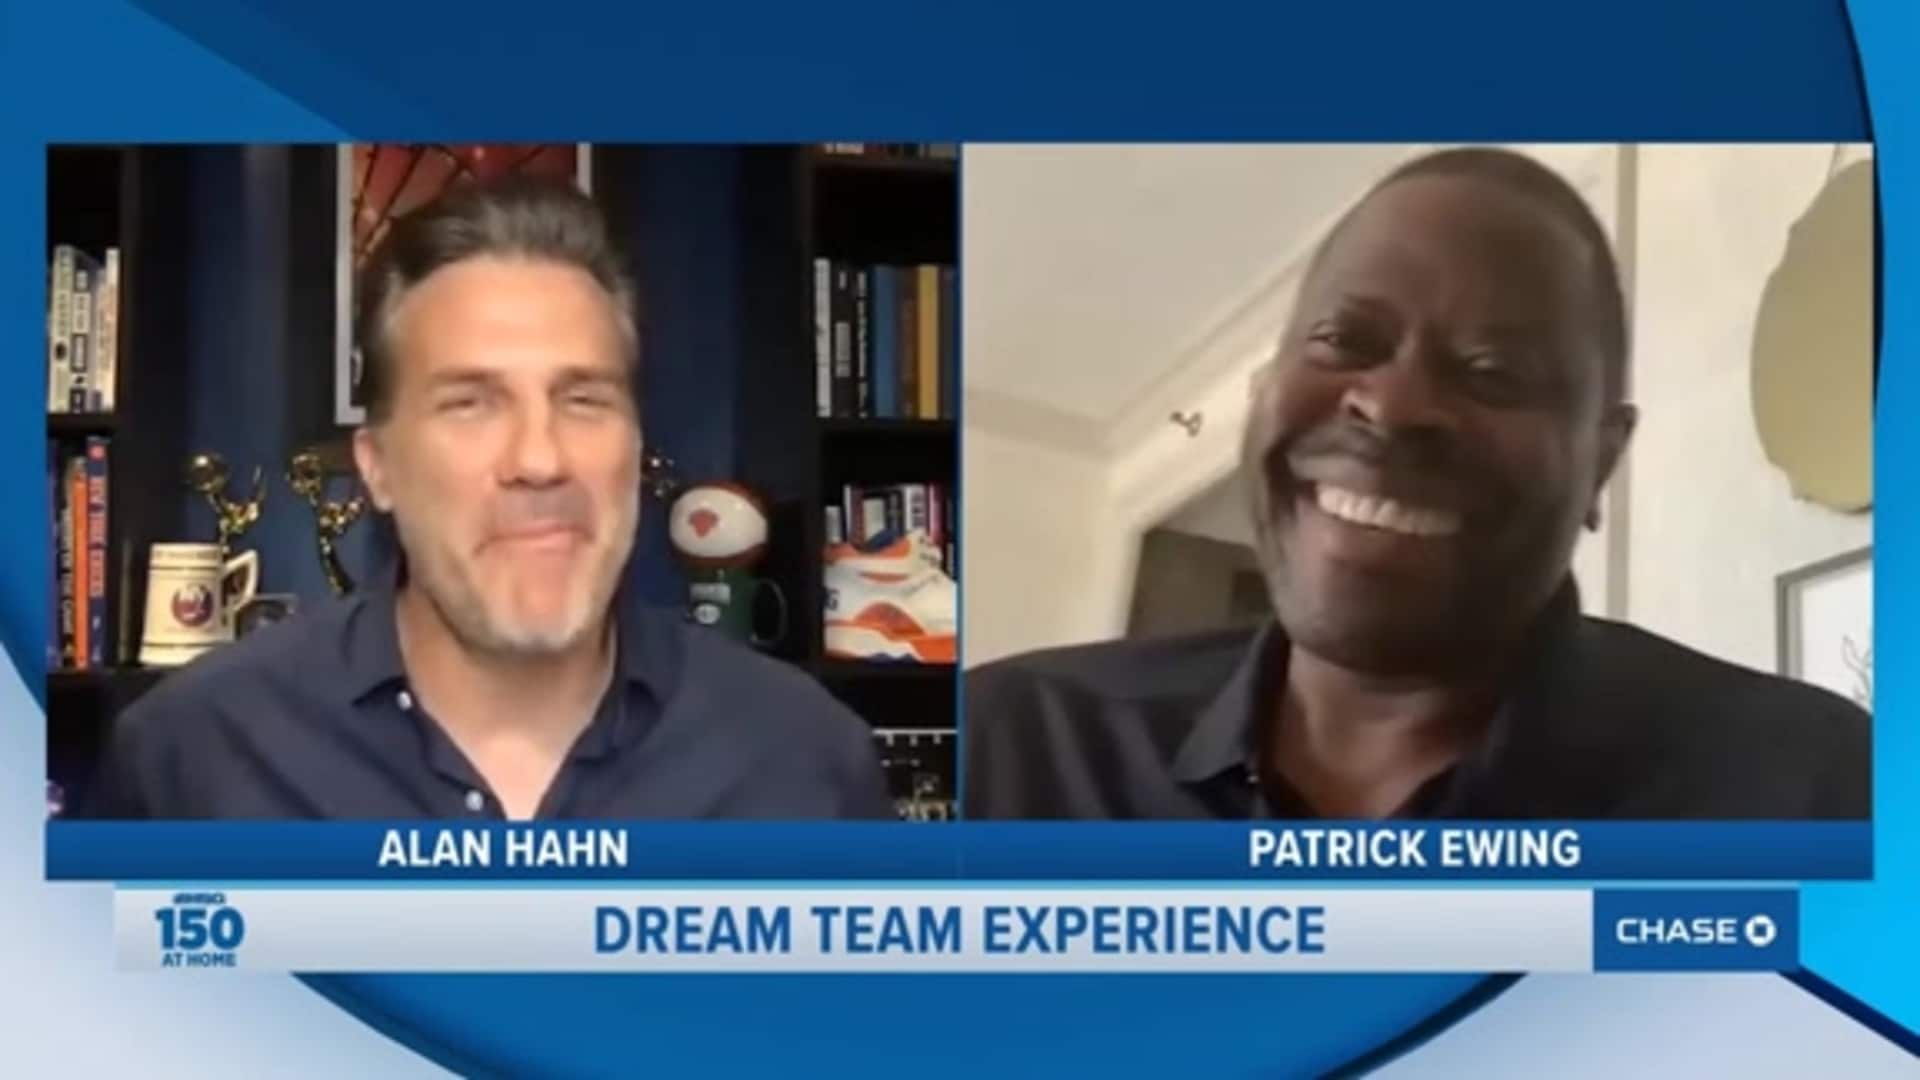 Patrick Ewing Joins Alan Hahn on the MSG 150 at Home